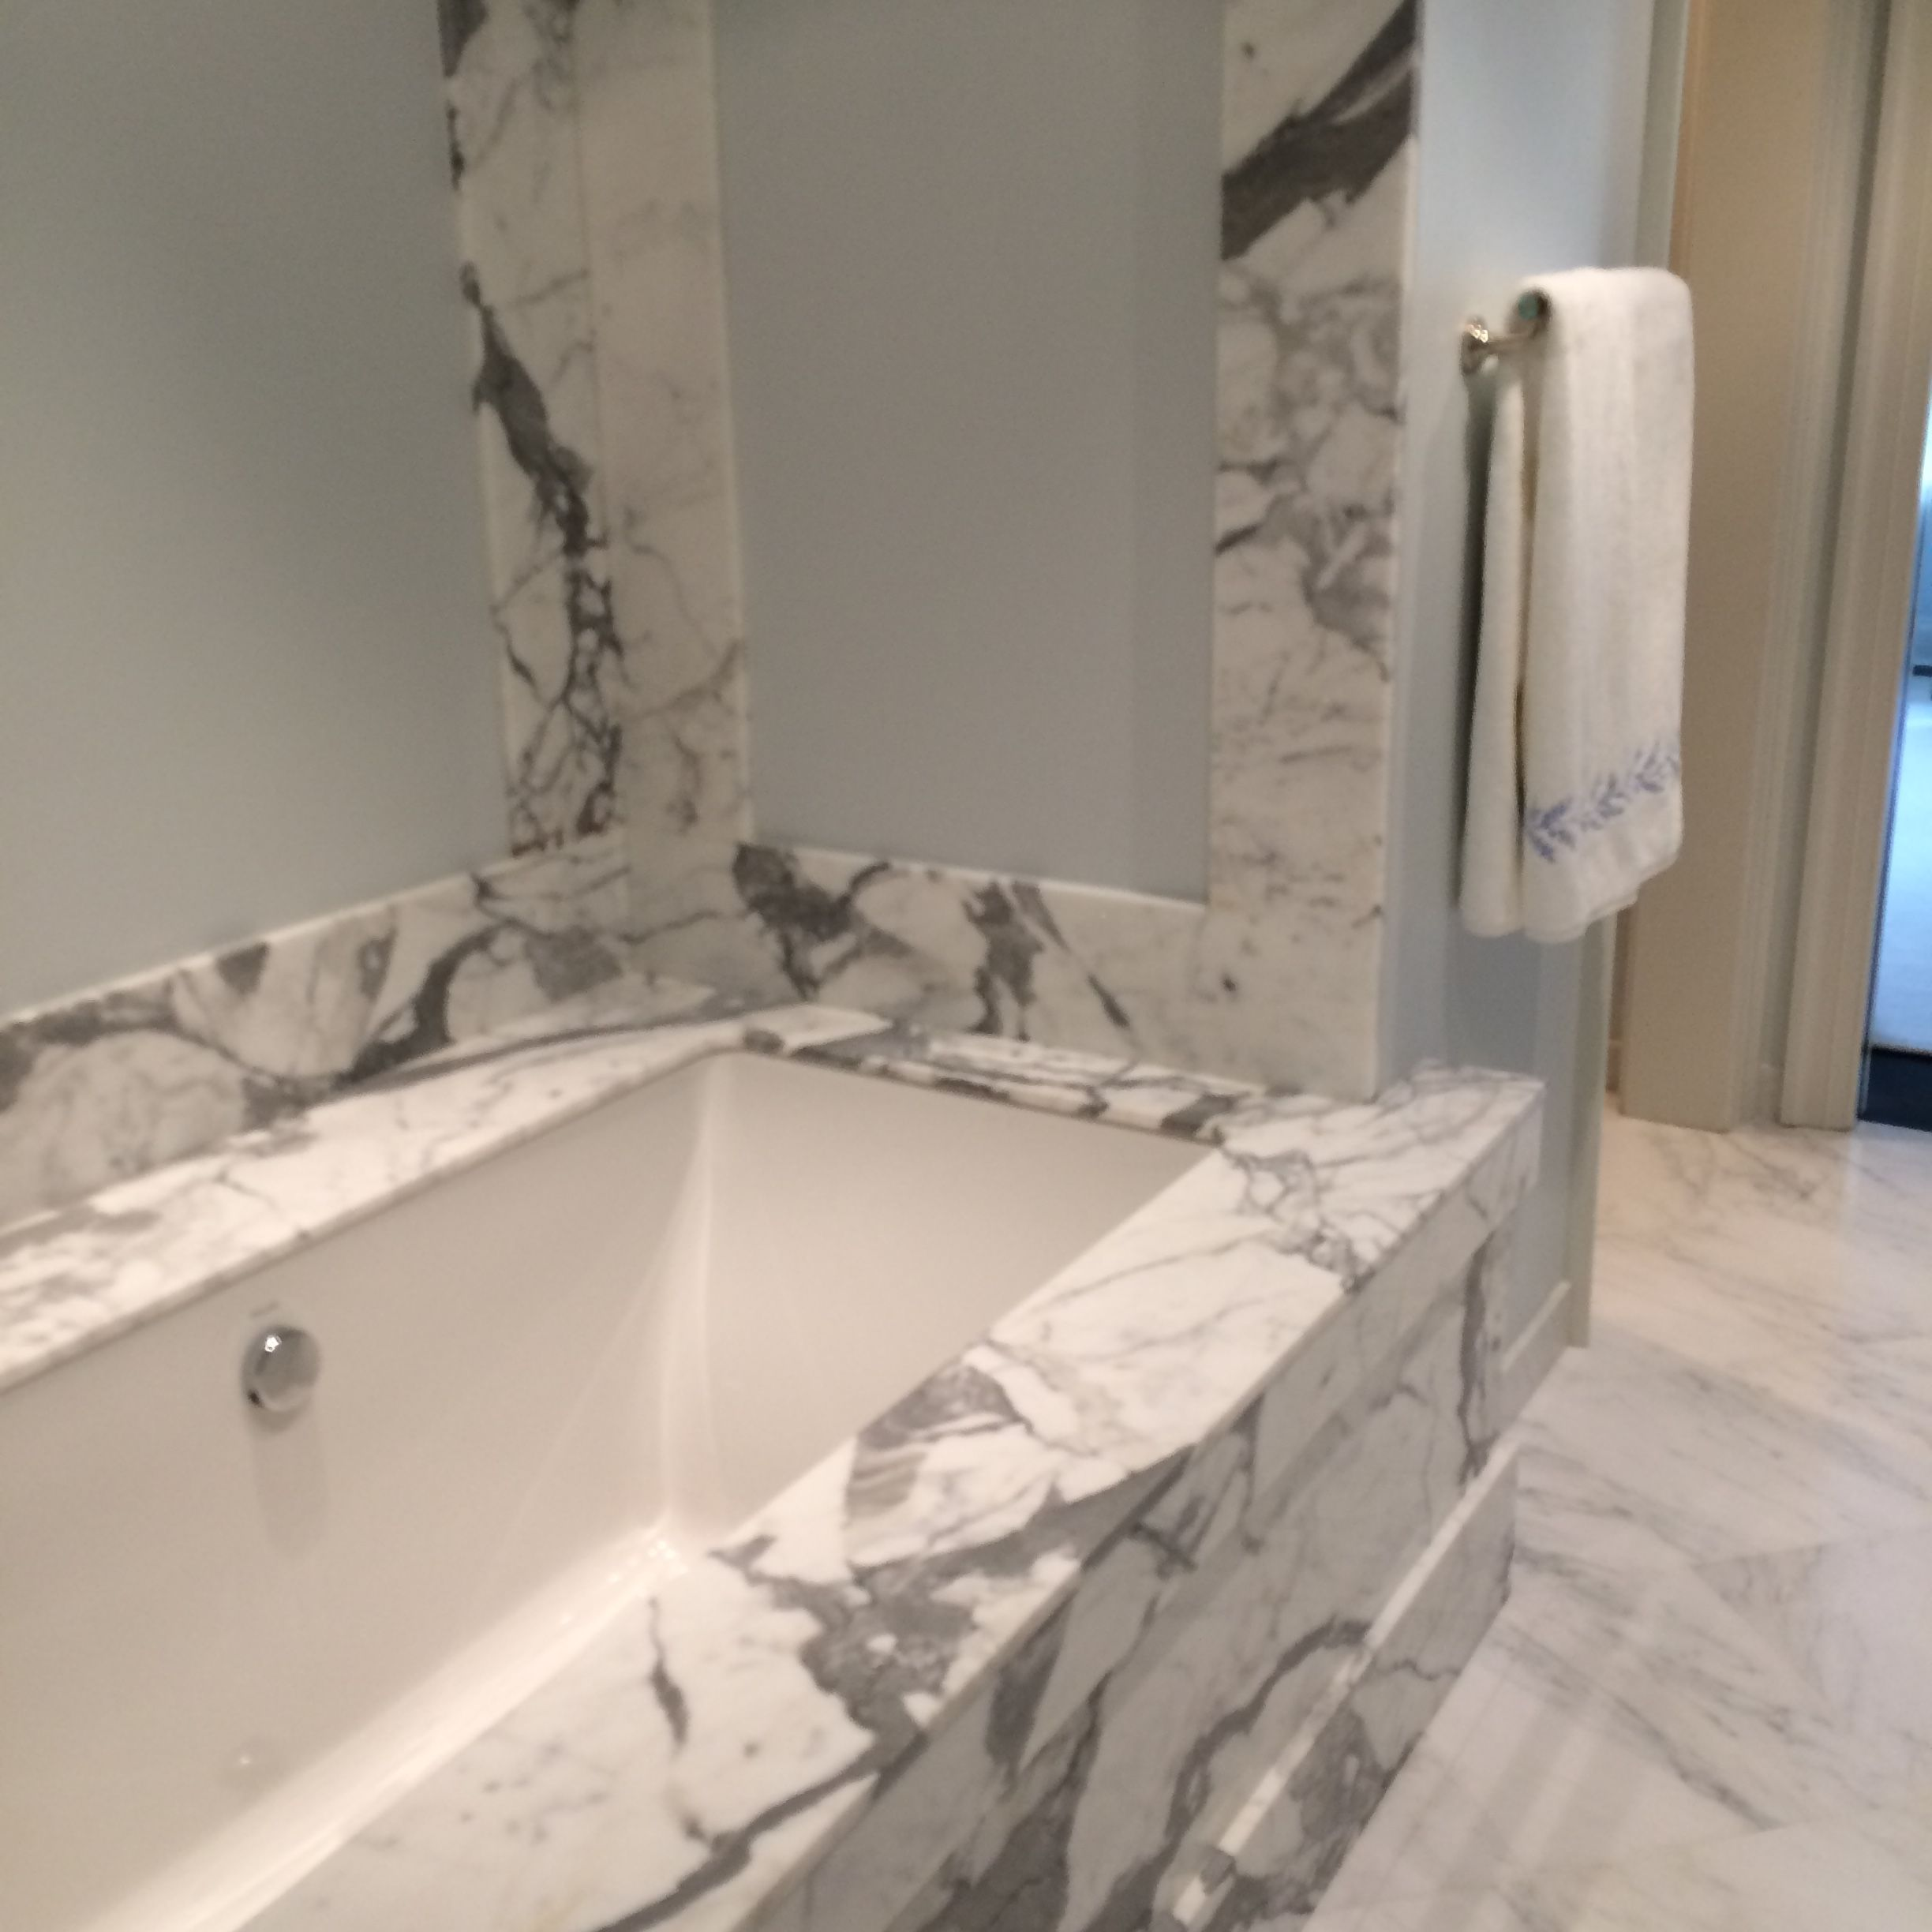 Undermount tub with marble deck, surround and paneled wall. mgpb.com ...